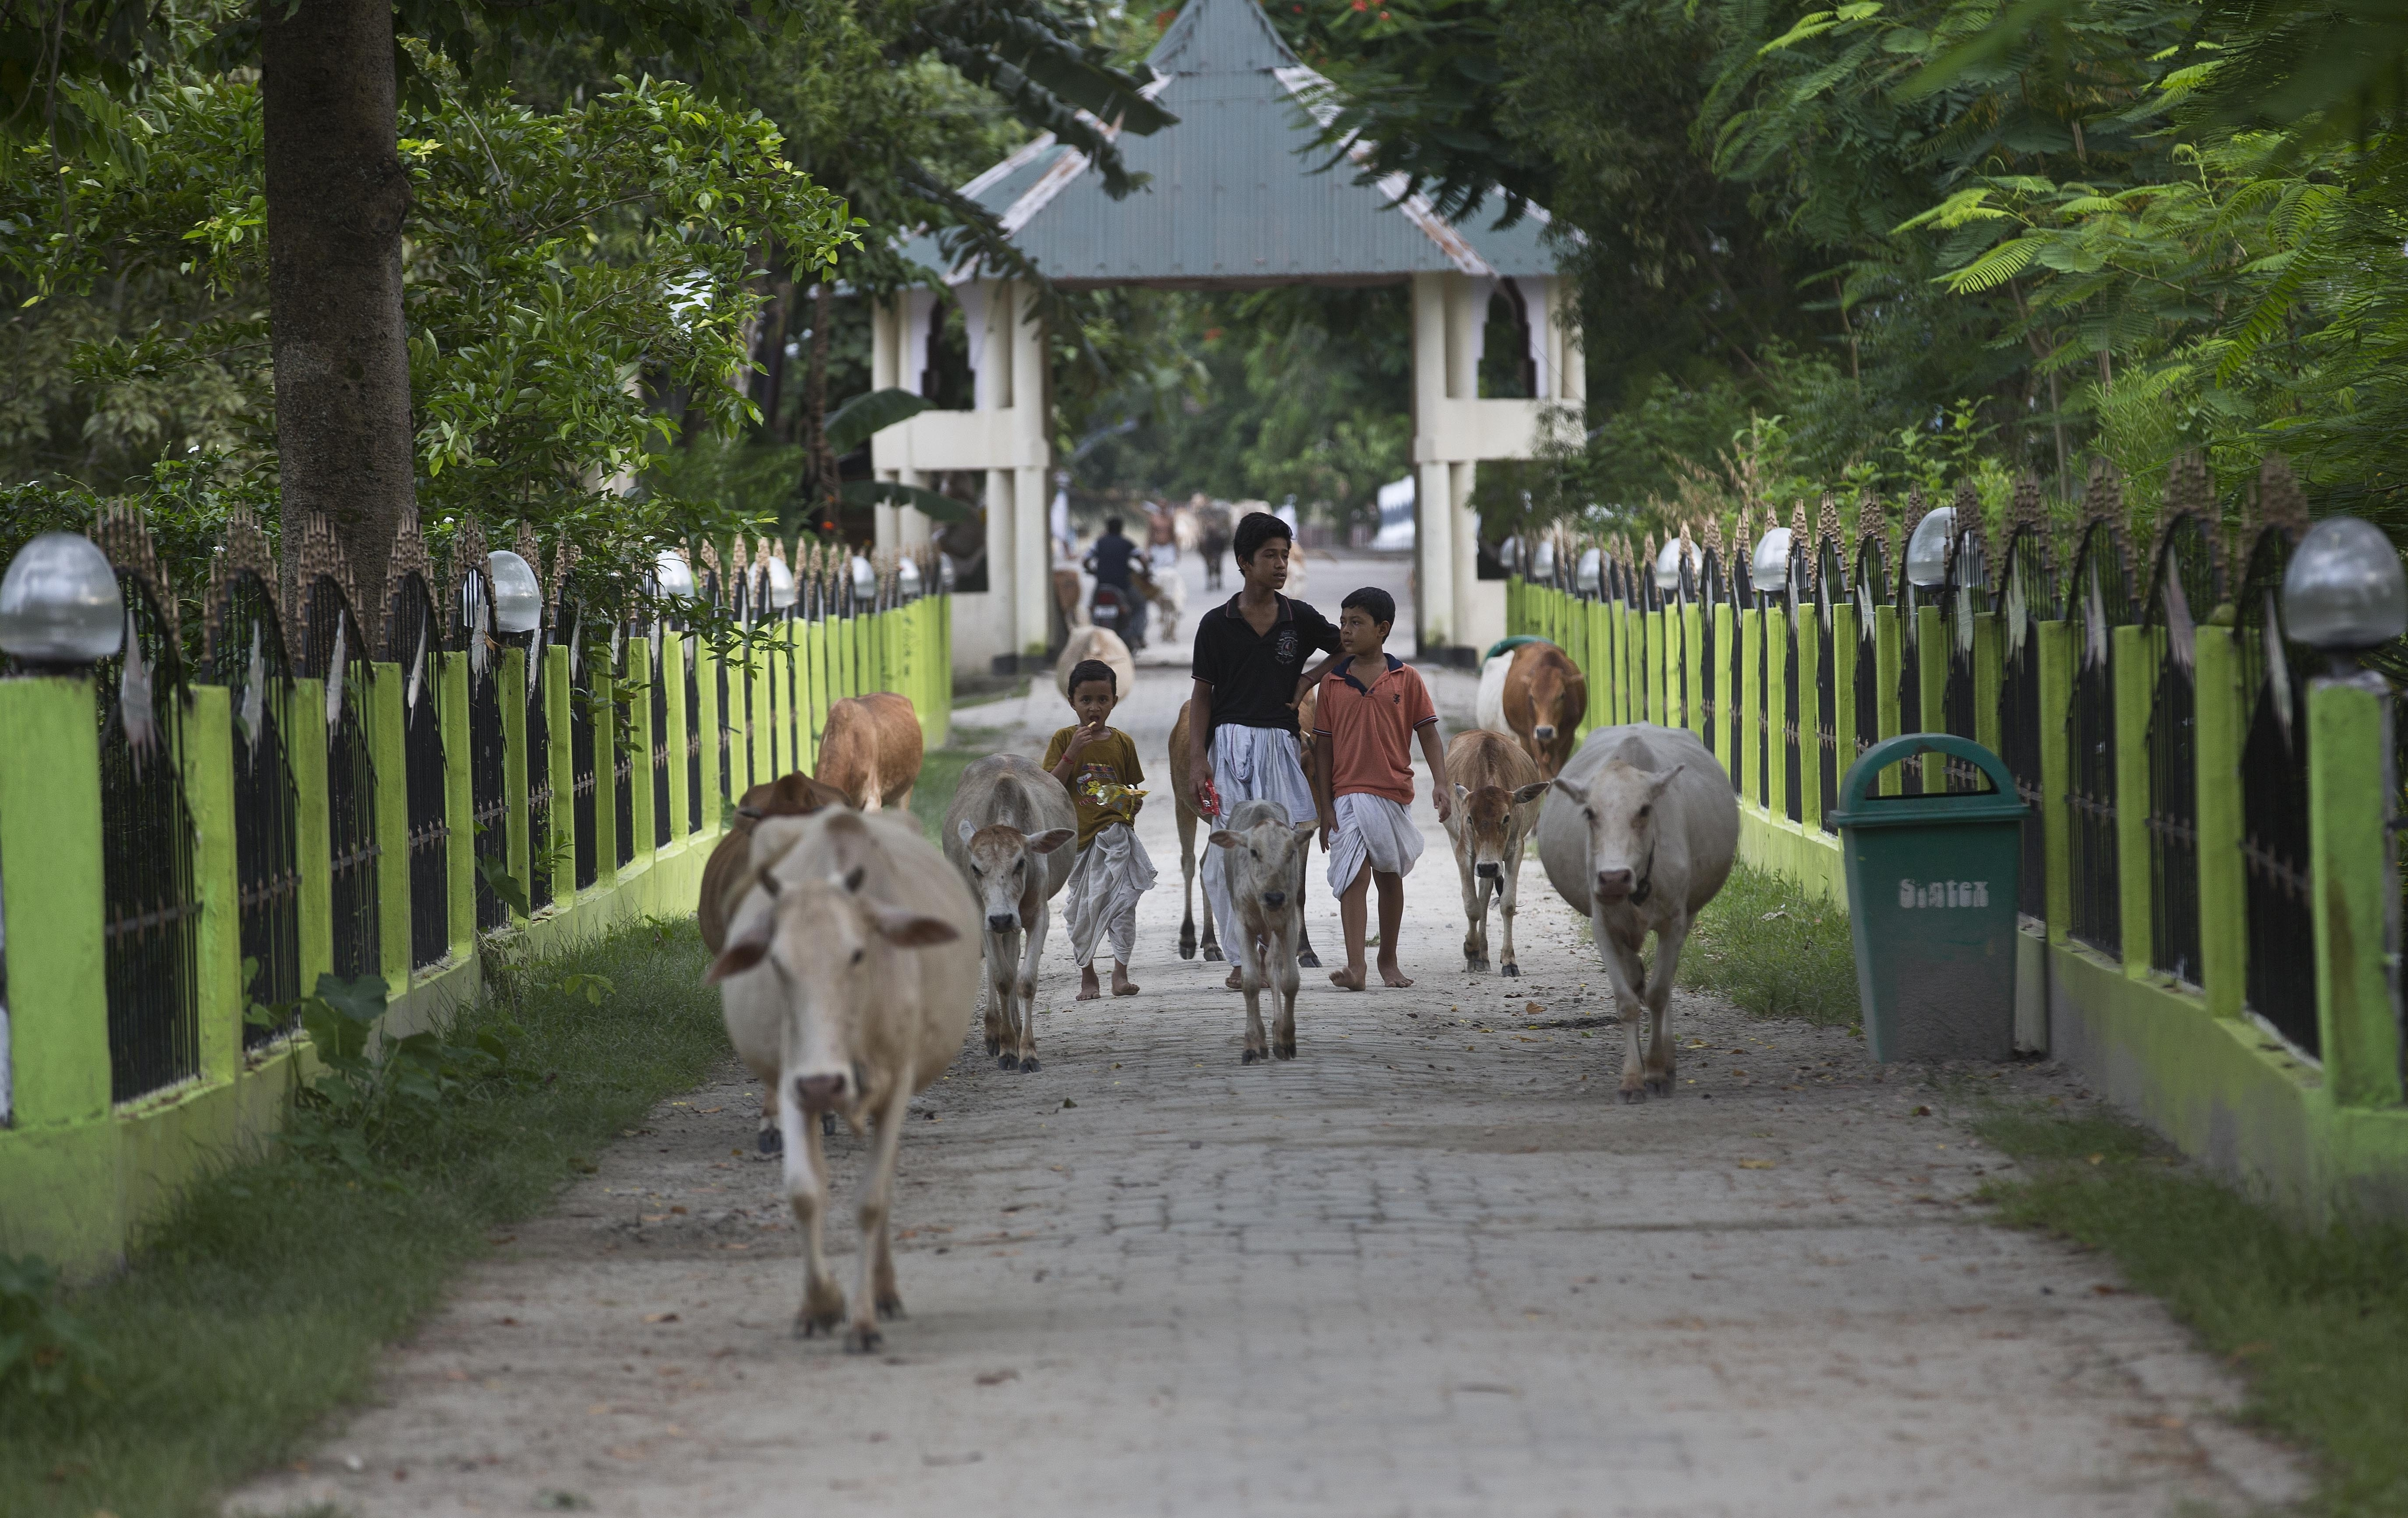 Young Hindu monks lead cattle at a Satra, or Vaishnavite monastery, in Majuli - AP